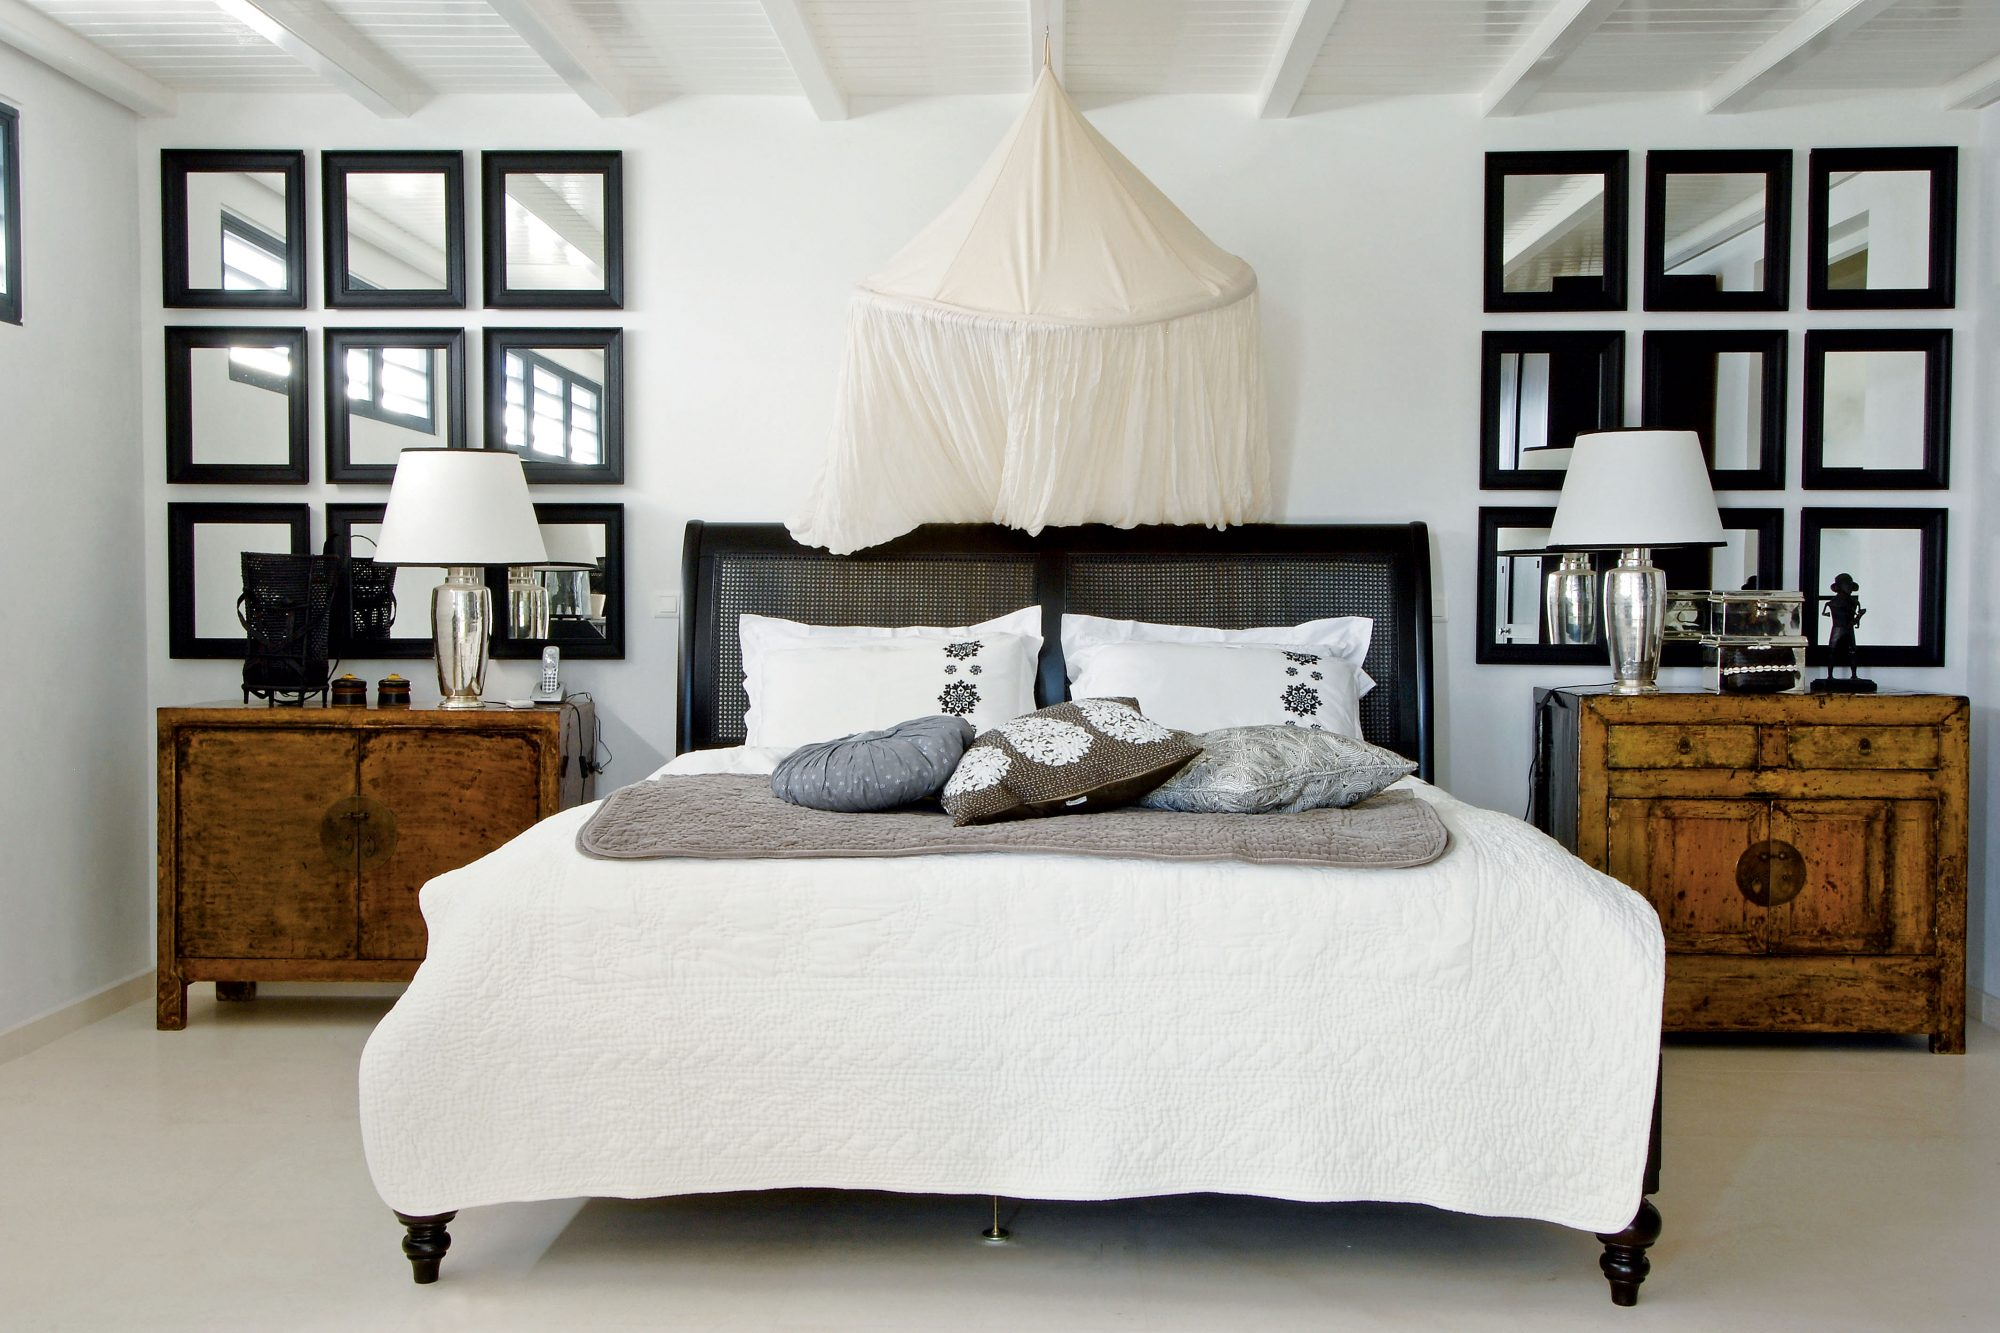 Veer away from an ultra-mod, cold look by adding antique wood pieces and a mix of soft-toned pillows to maintain the uncluttered, laid-back ease of the islands.